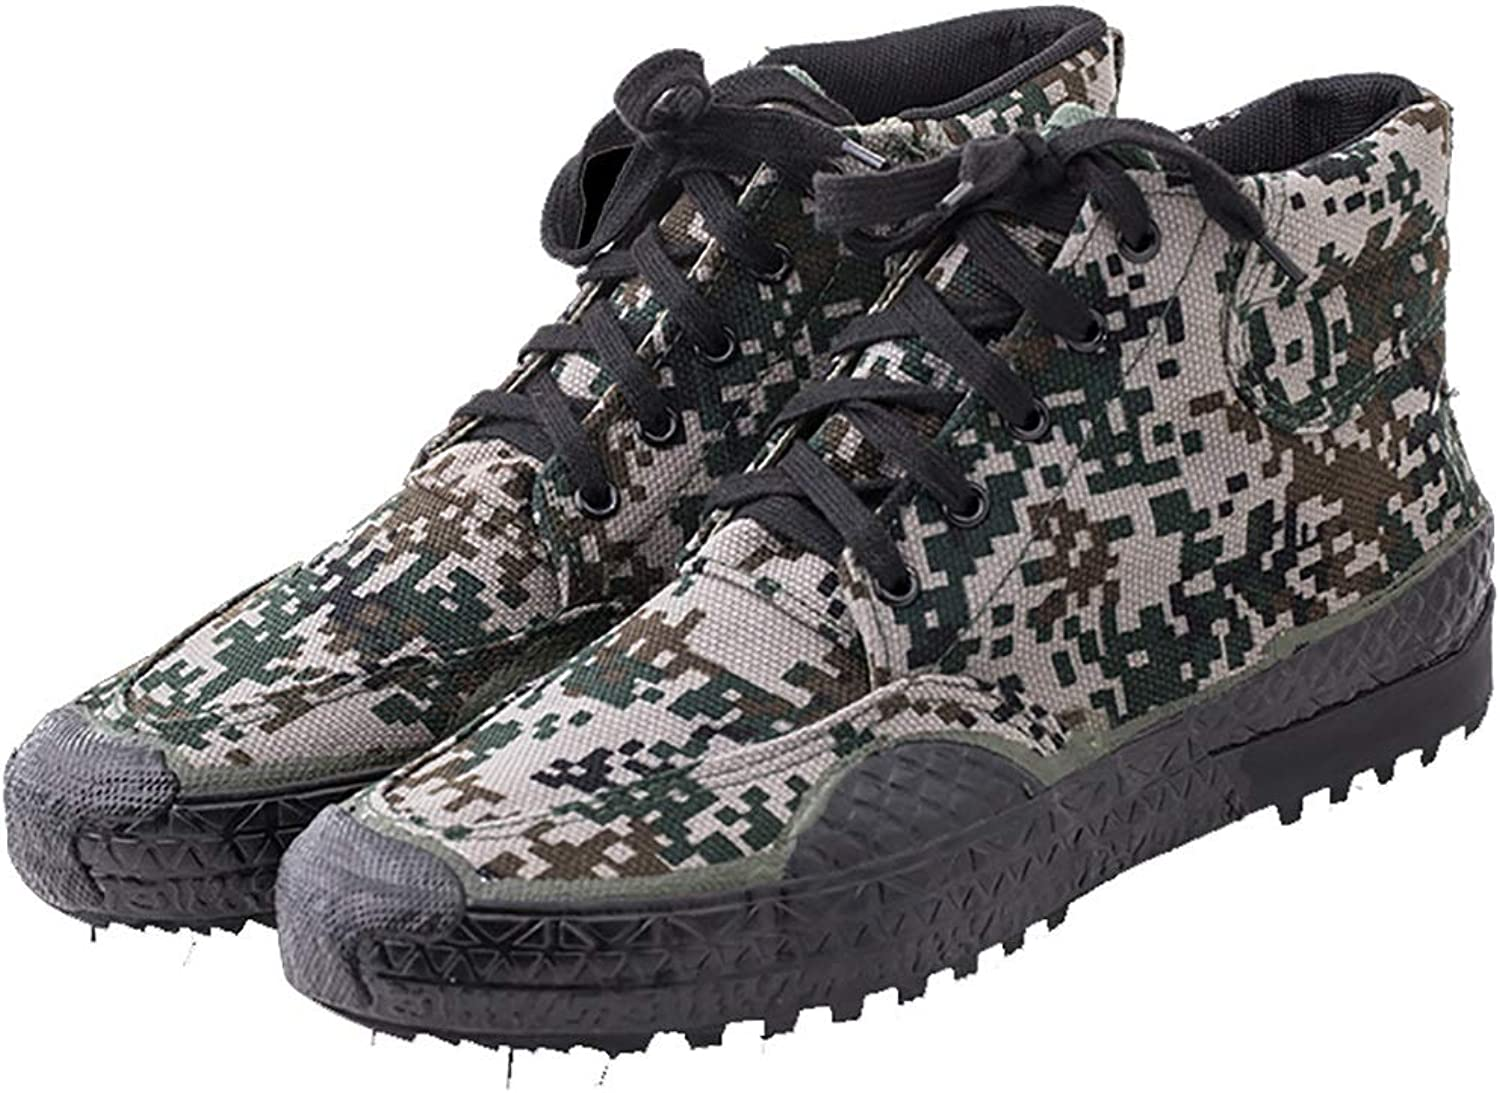 TEEIEW High-top labor insurance rubber shoes military shoes wear-resistant labor shoes (Size   38)